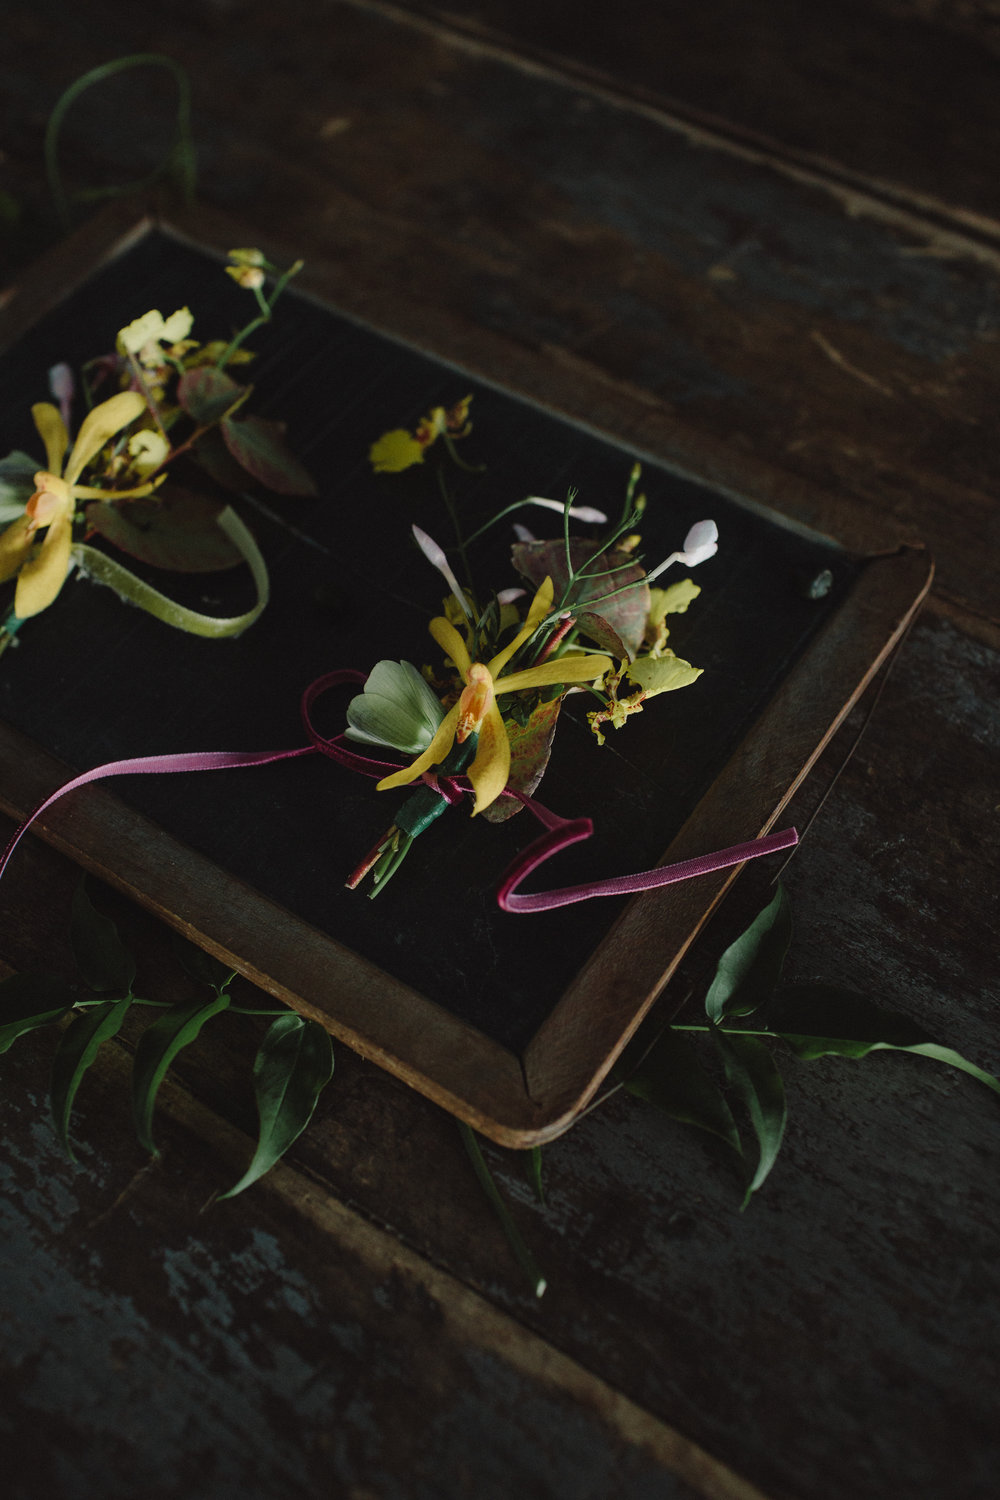 Spring wedding flowers by Nectar & Root | Wedding floral design services in Burlington, Vermont (VT) | Boutonnieres made with jasmine, orchids, and fritillaria buds